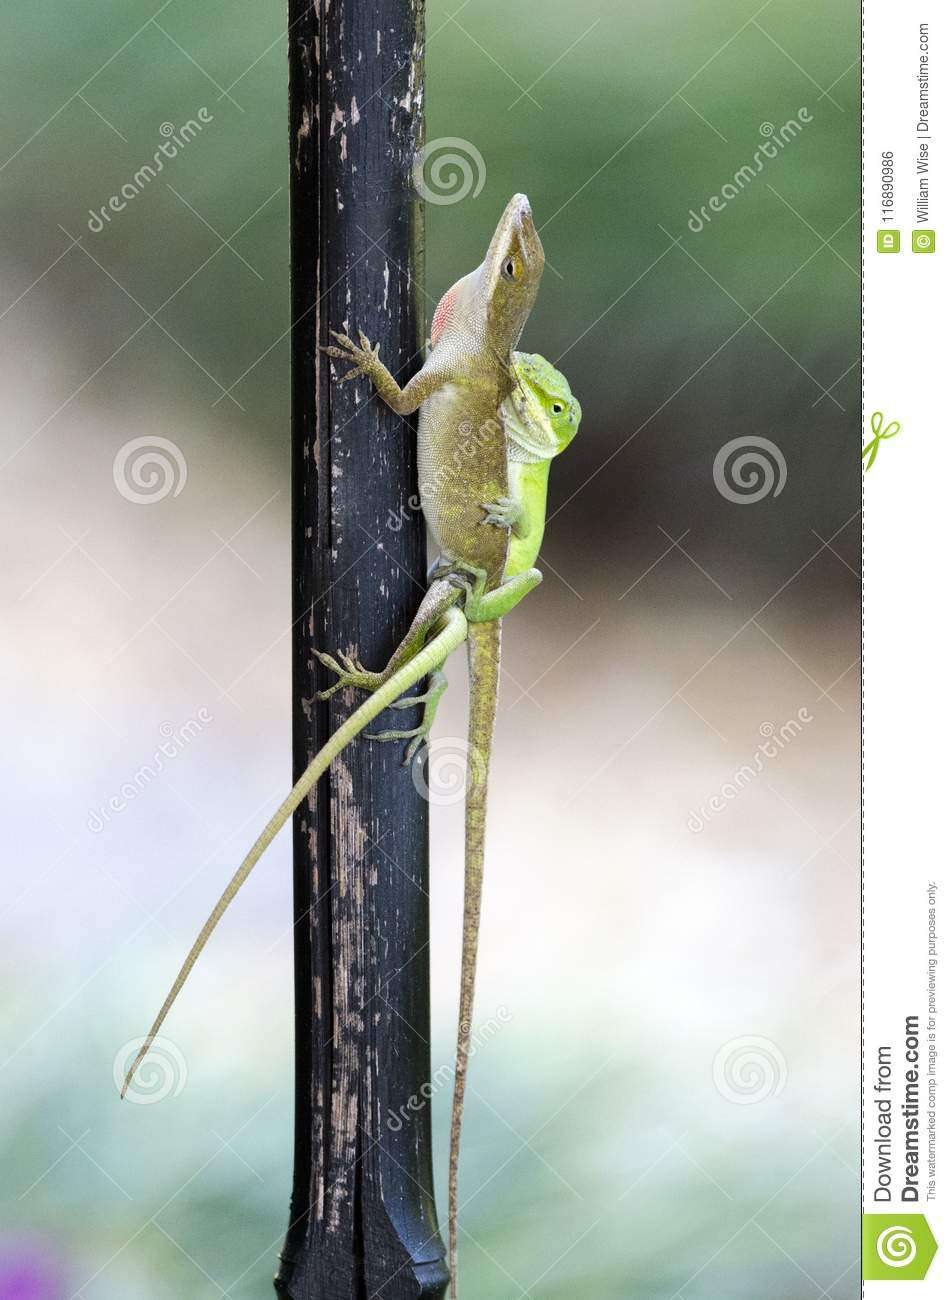 Mating Chameleon Green Anole Lizards, Georgia USA